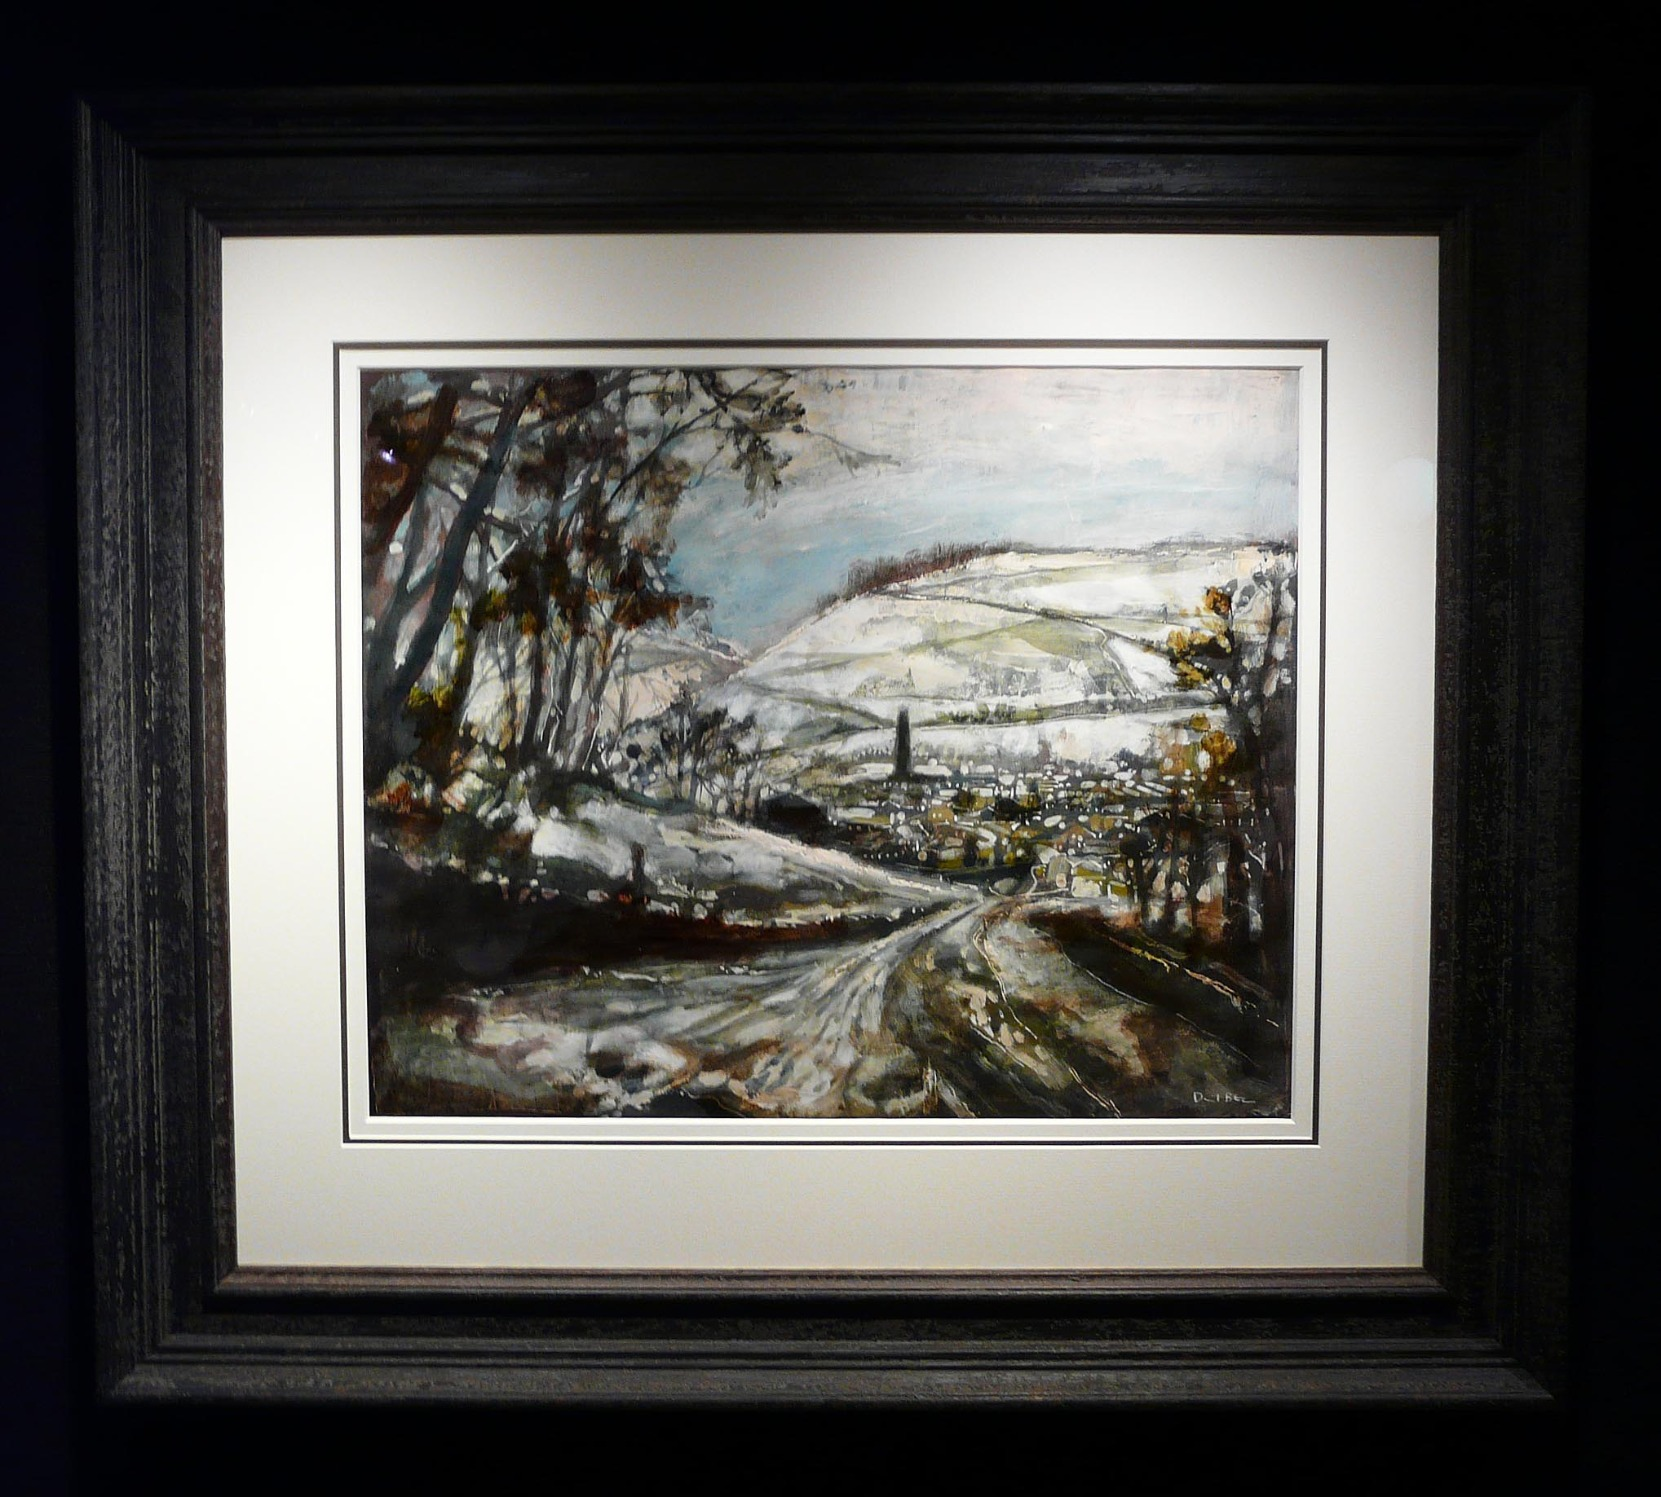 The Only Road into Town by David Bez